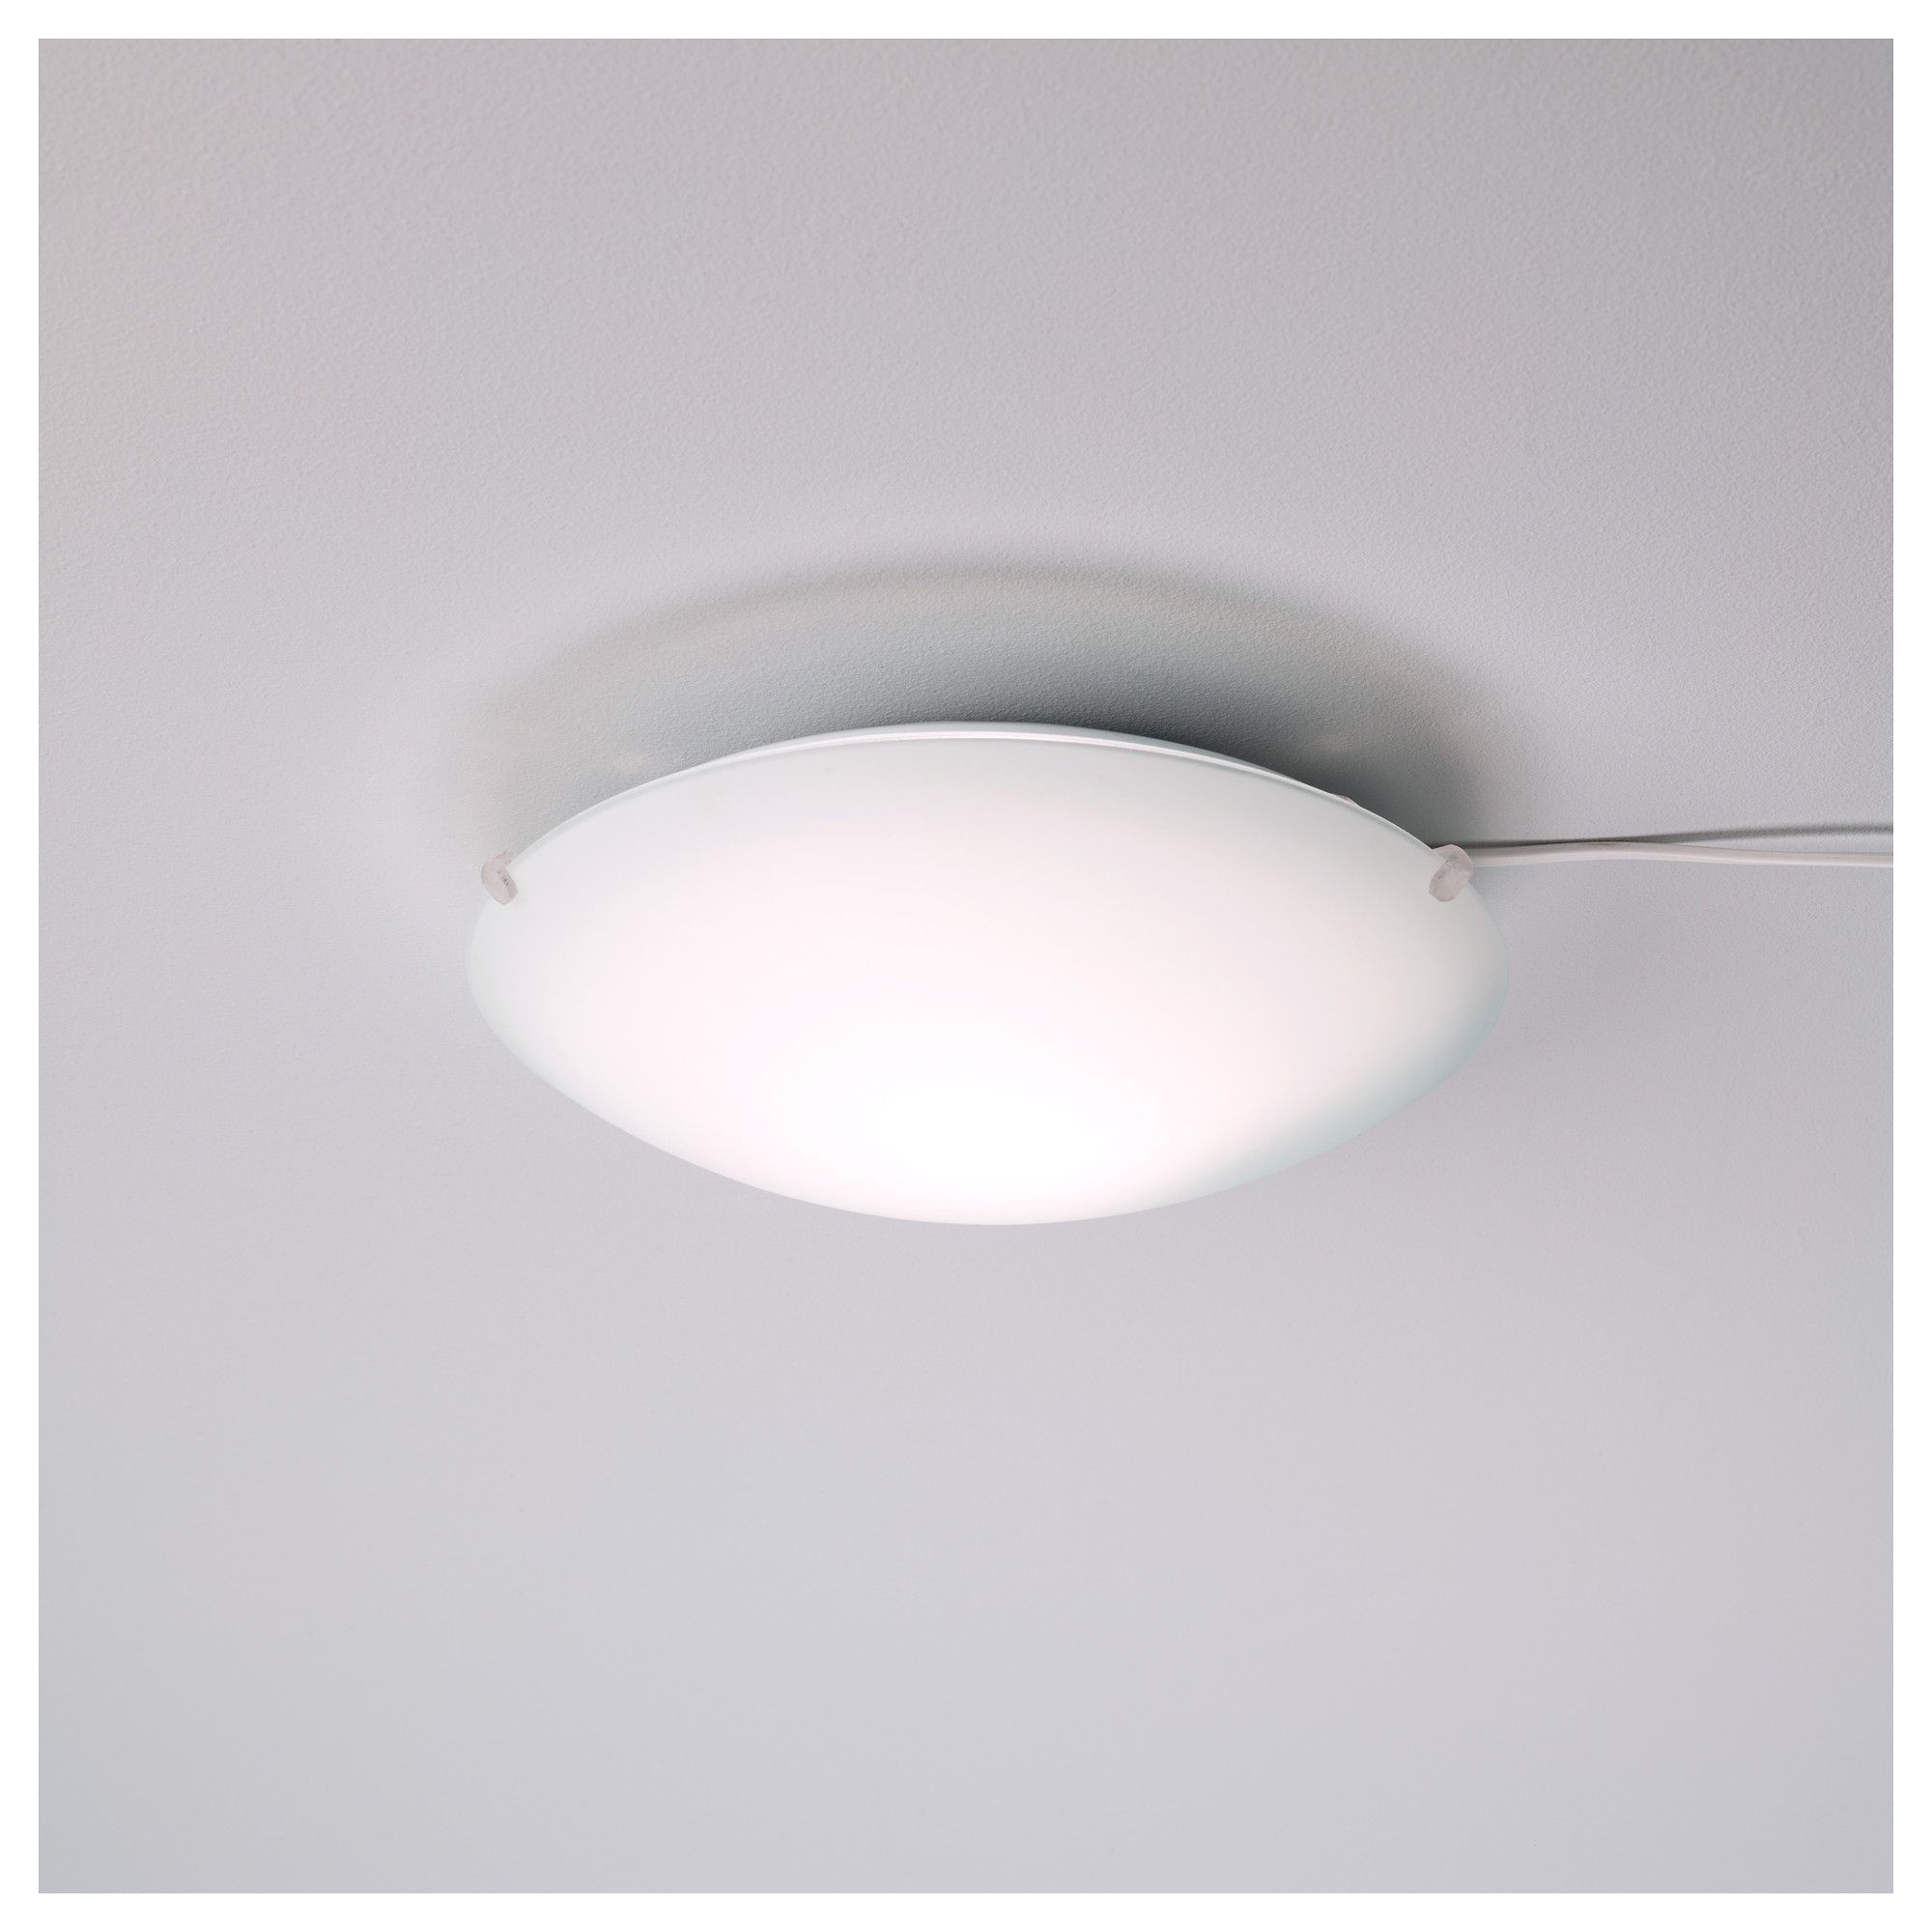 Ikea Us Furniture And Home Furnishings Ceiling Lamp Lamp Ceiling Lamp White